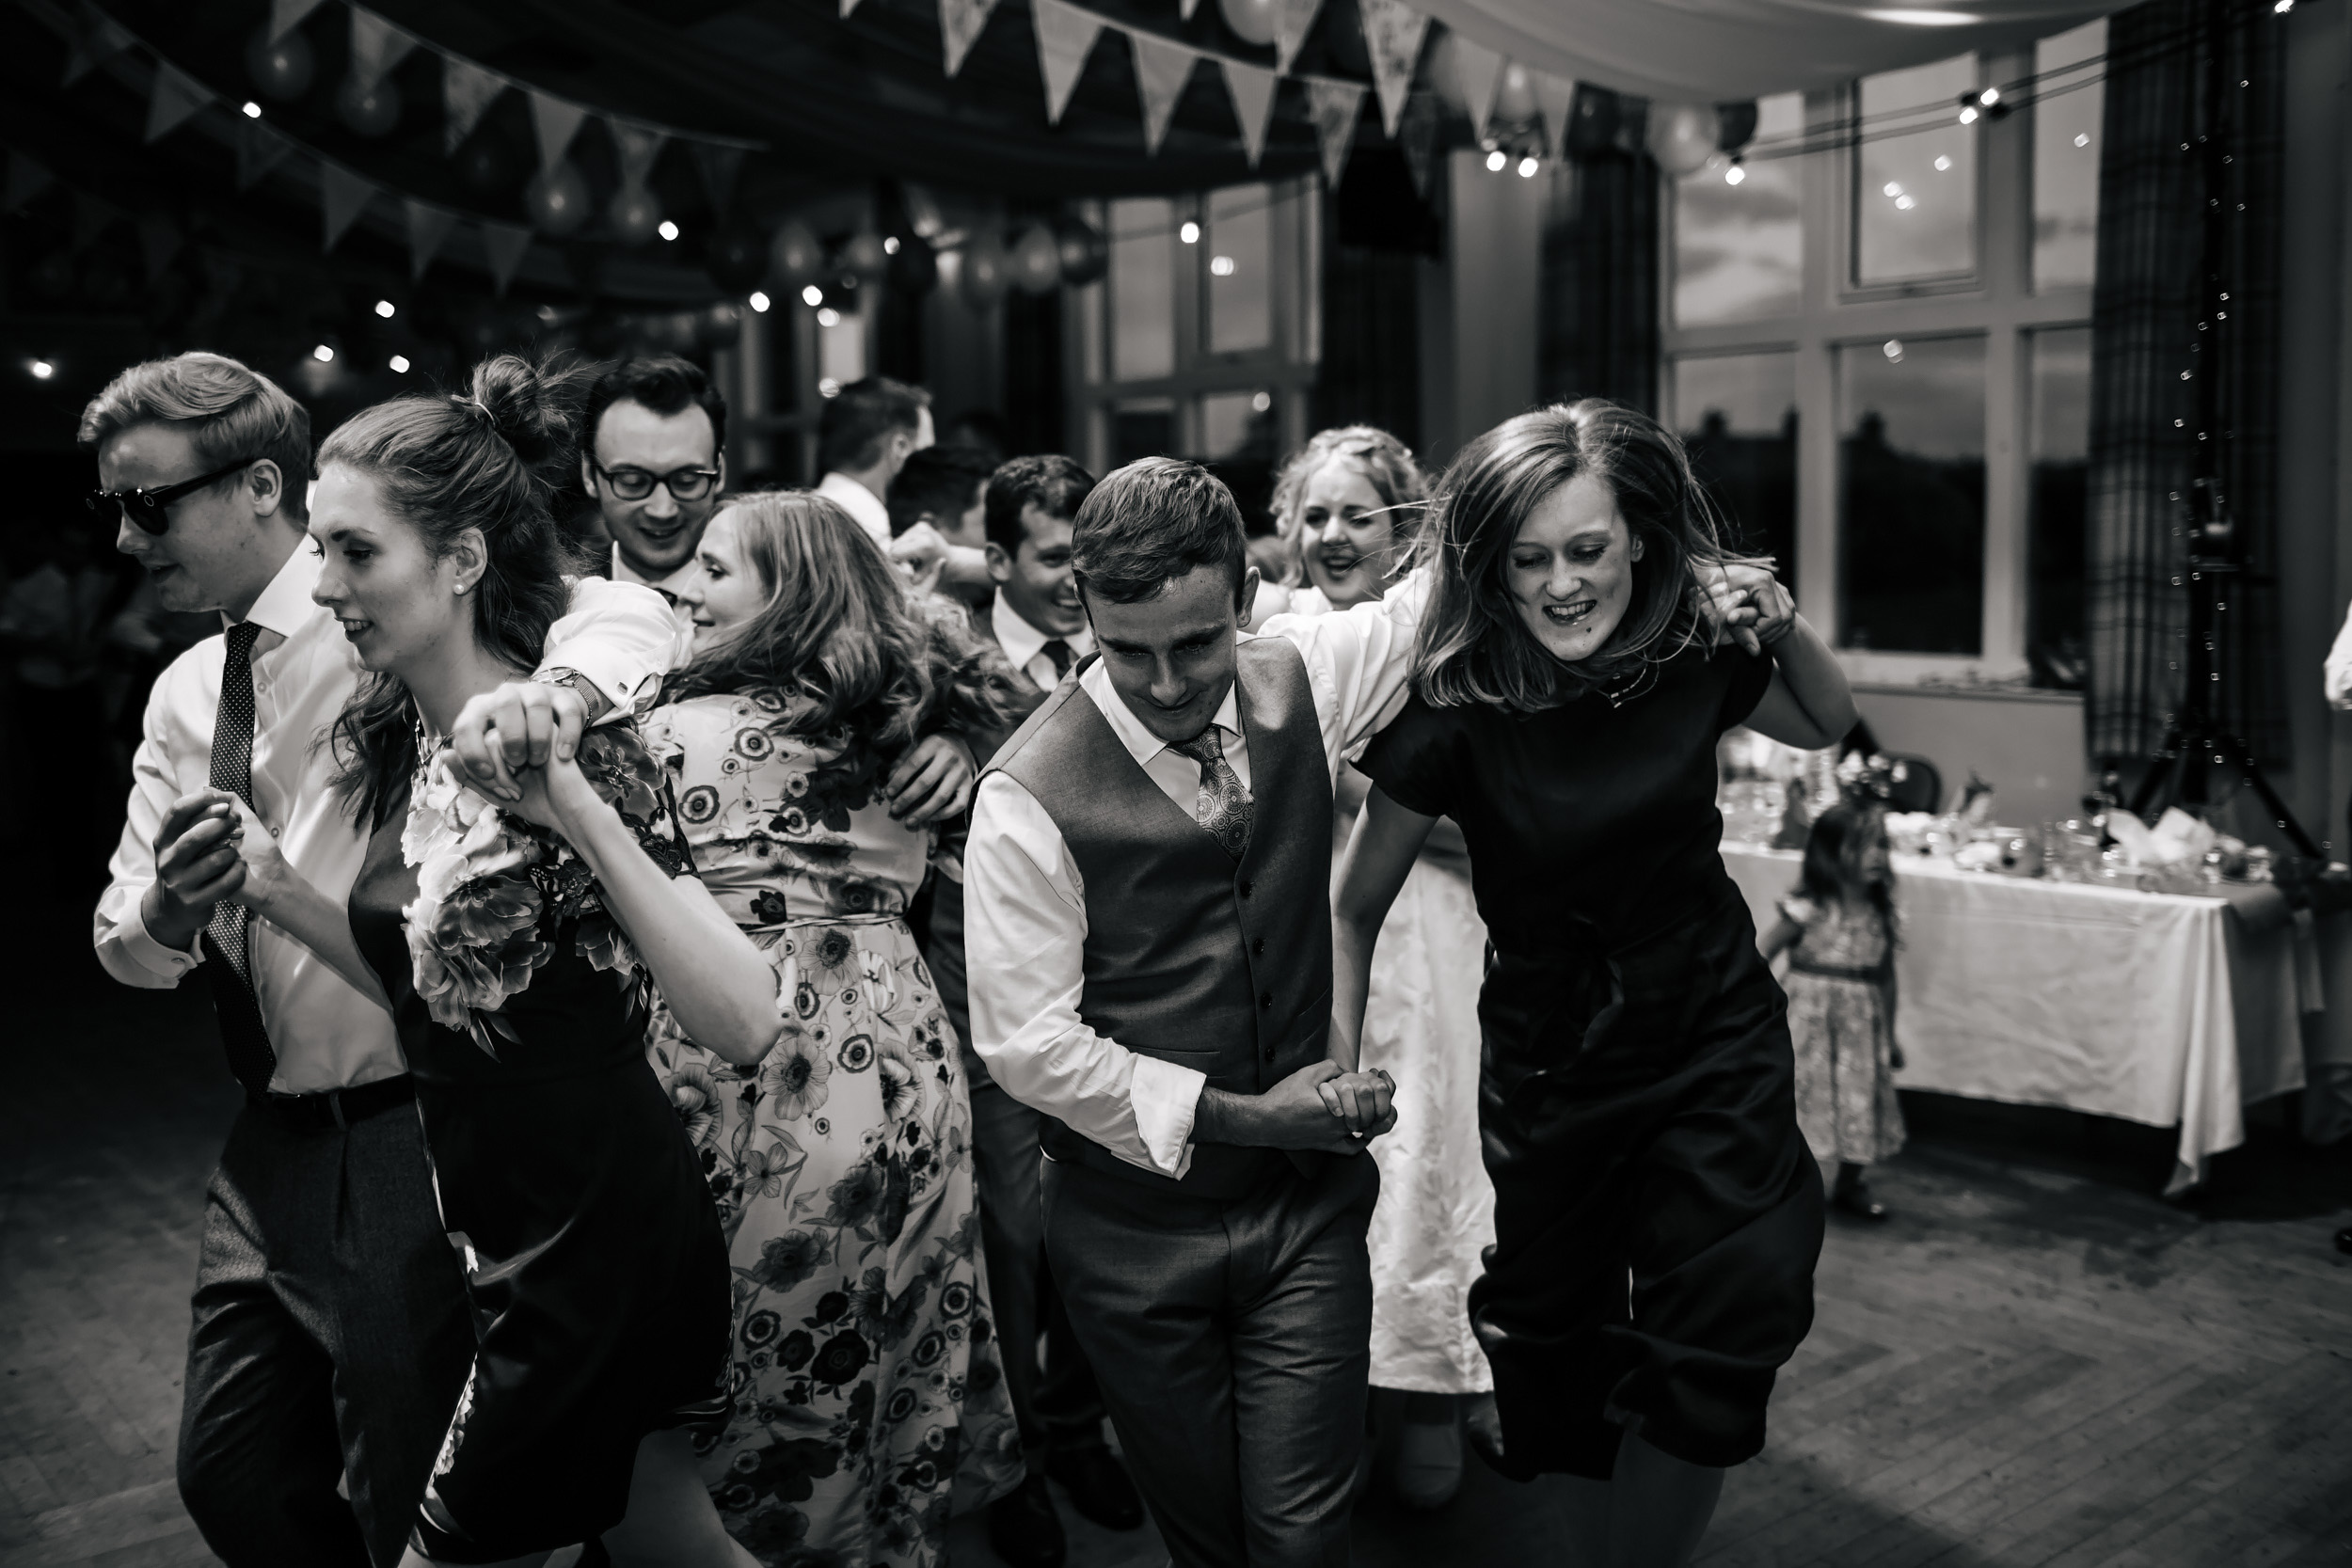 Wedding guests dance at a ceilidh